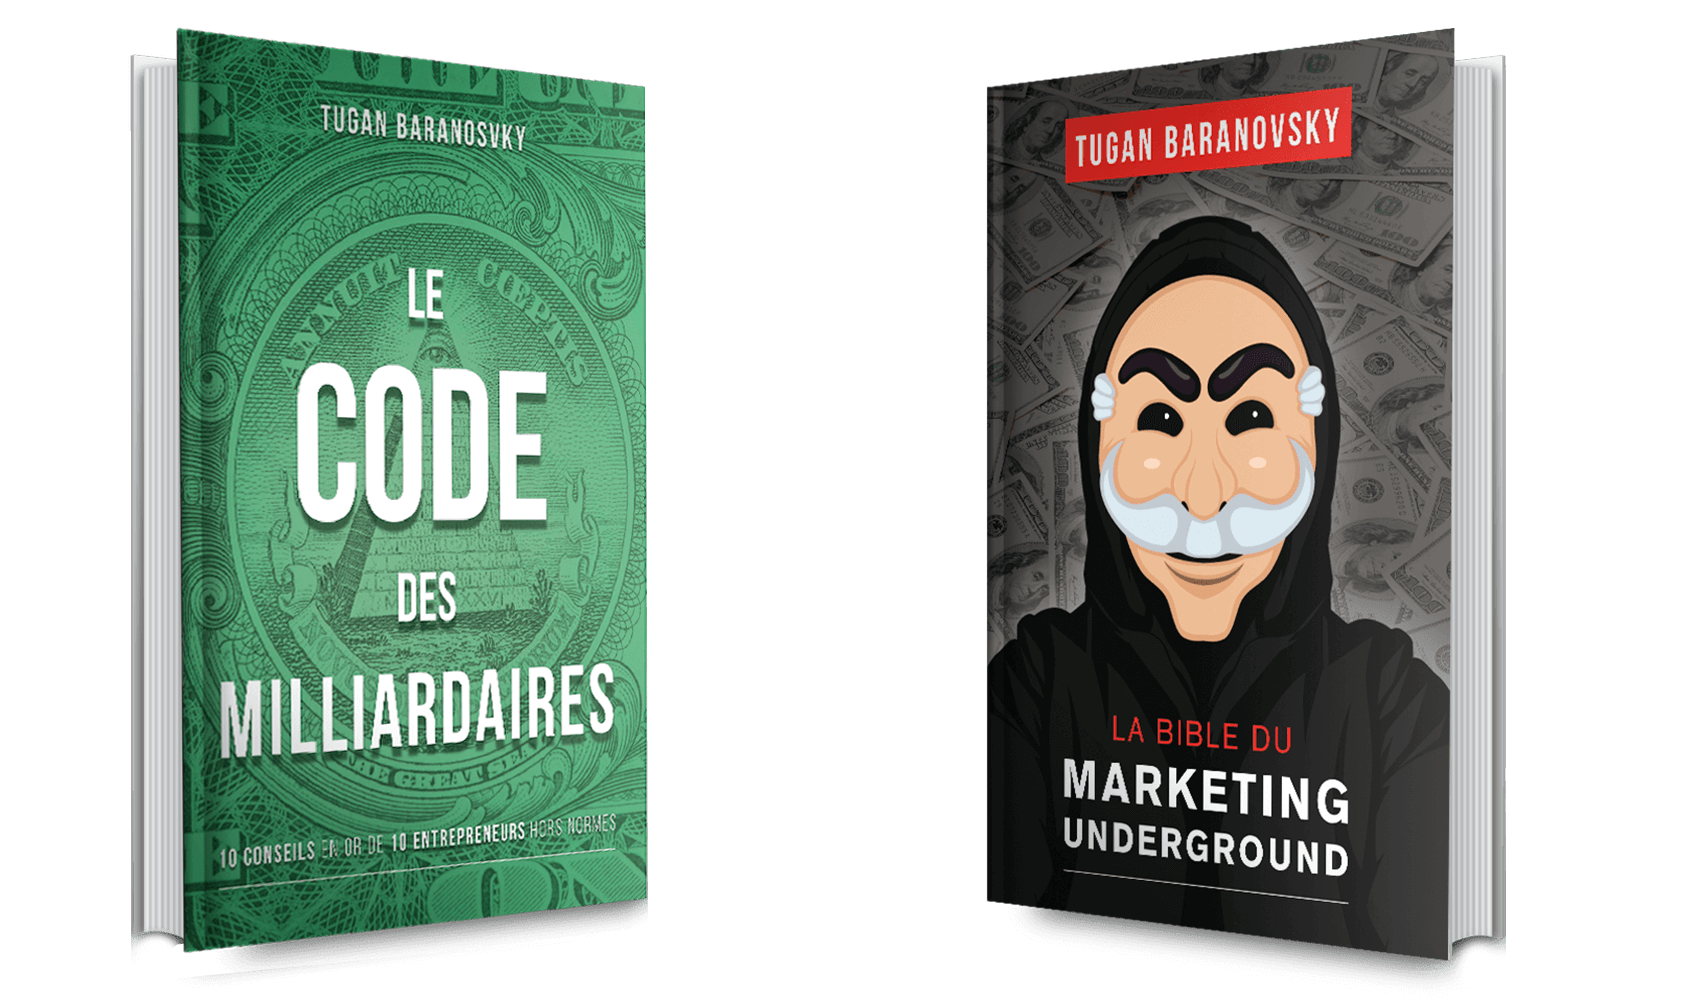 La bible du marketing underground et le code des milliardaires